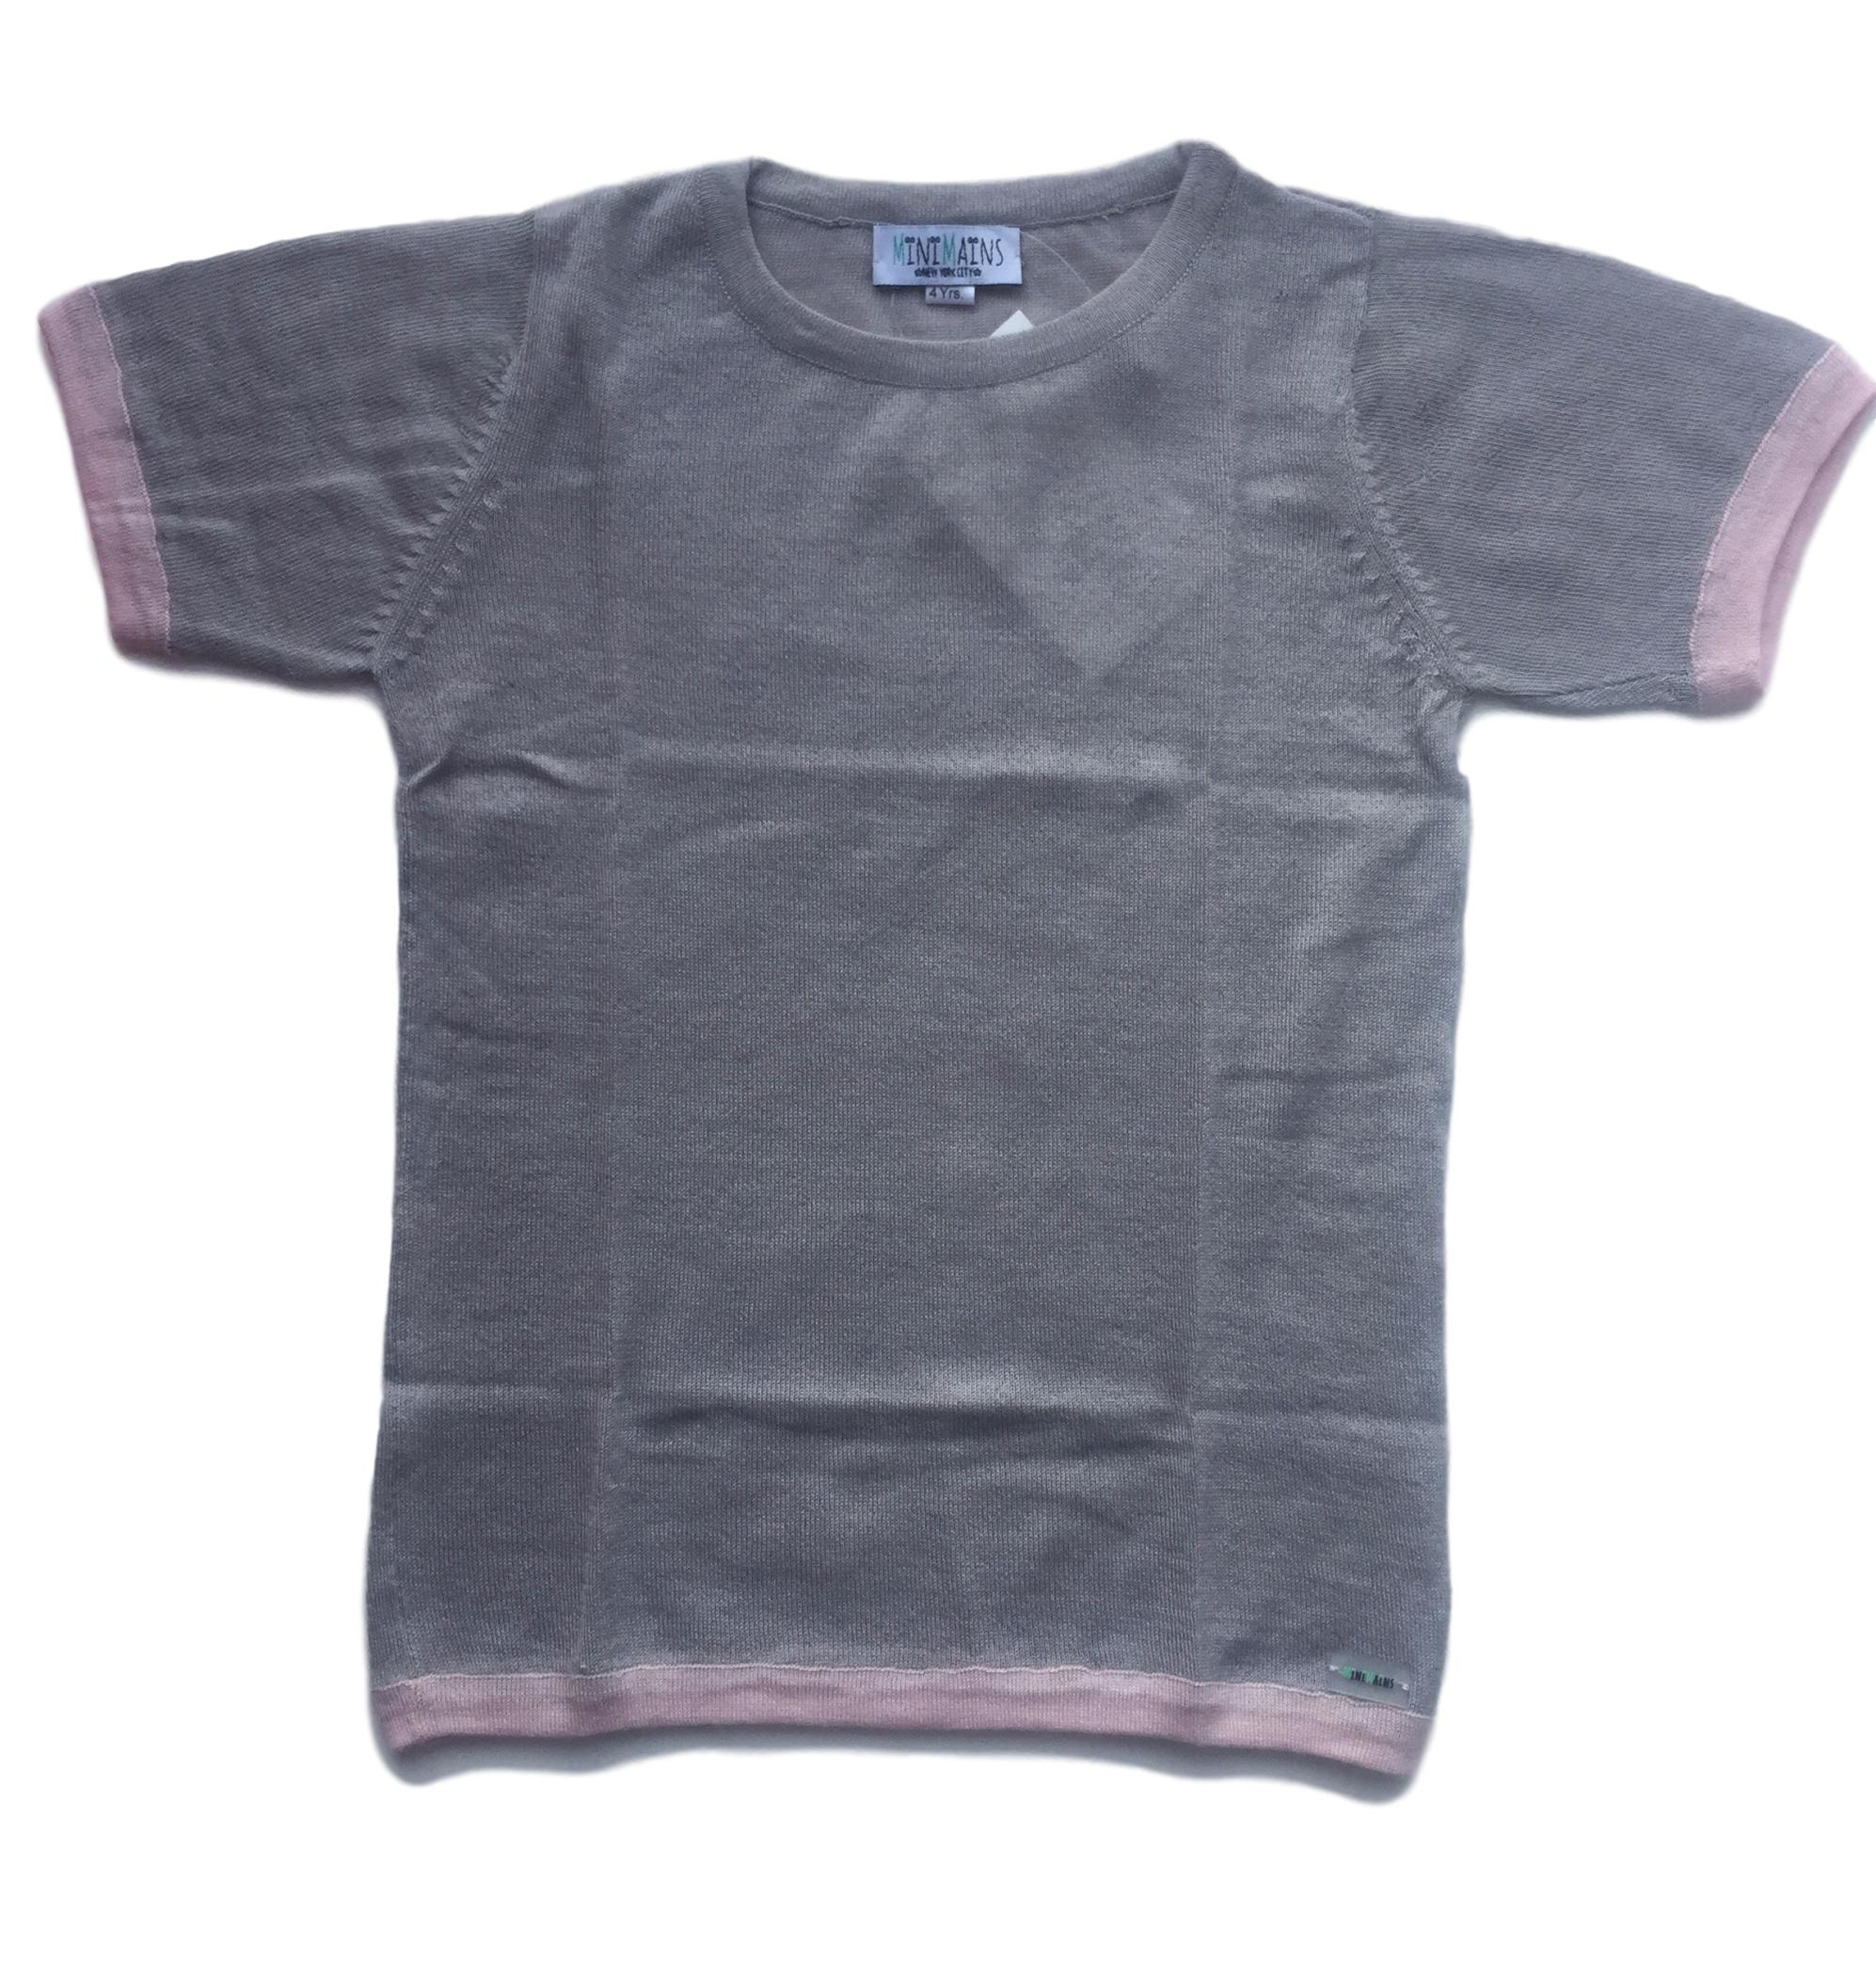 100% Cashmere Shirt - MINIMAINS